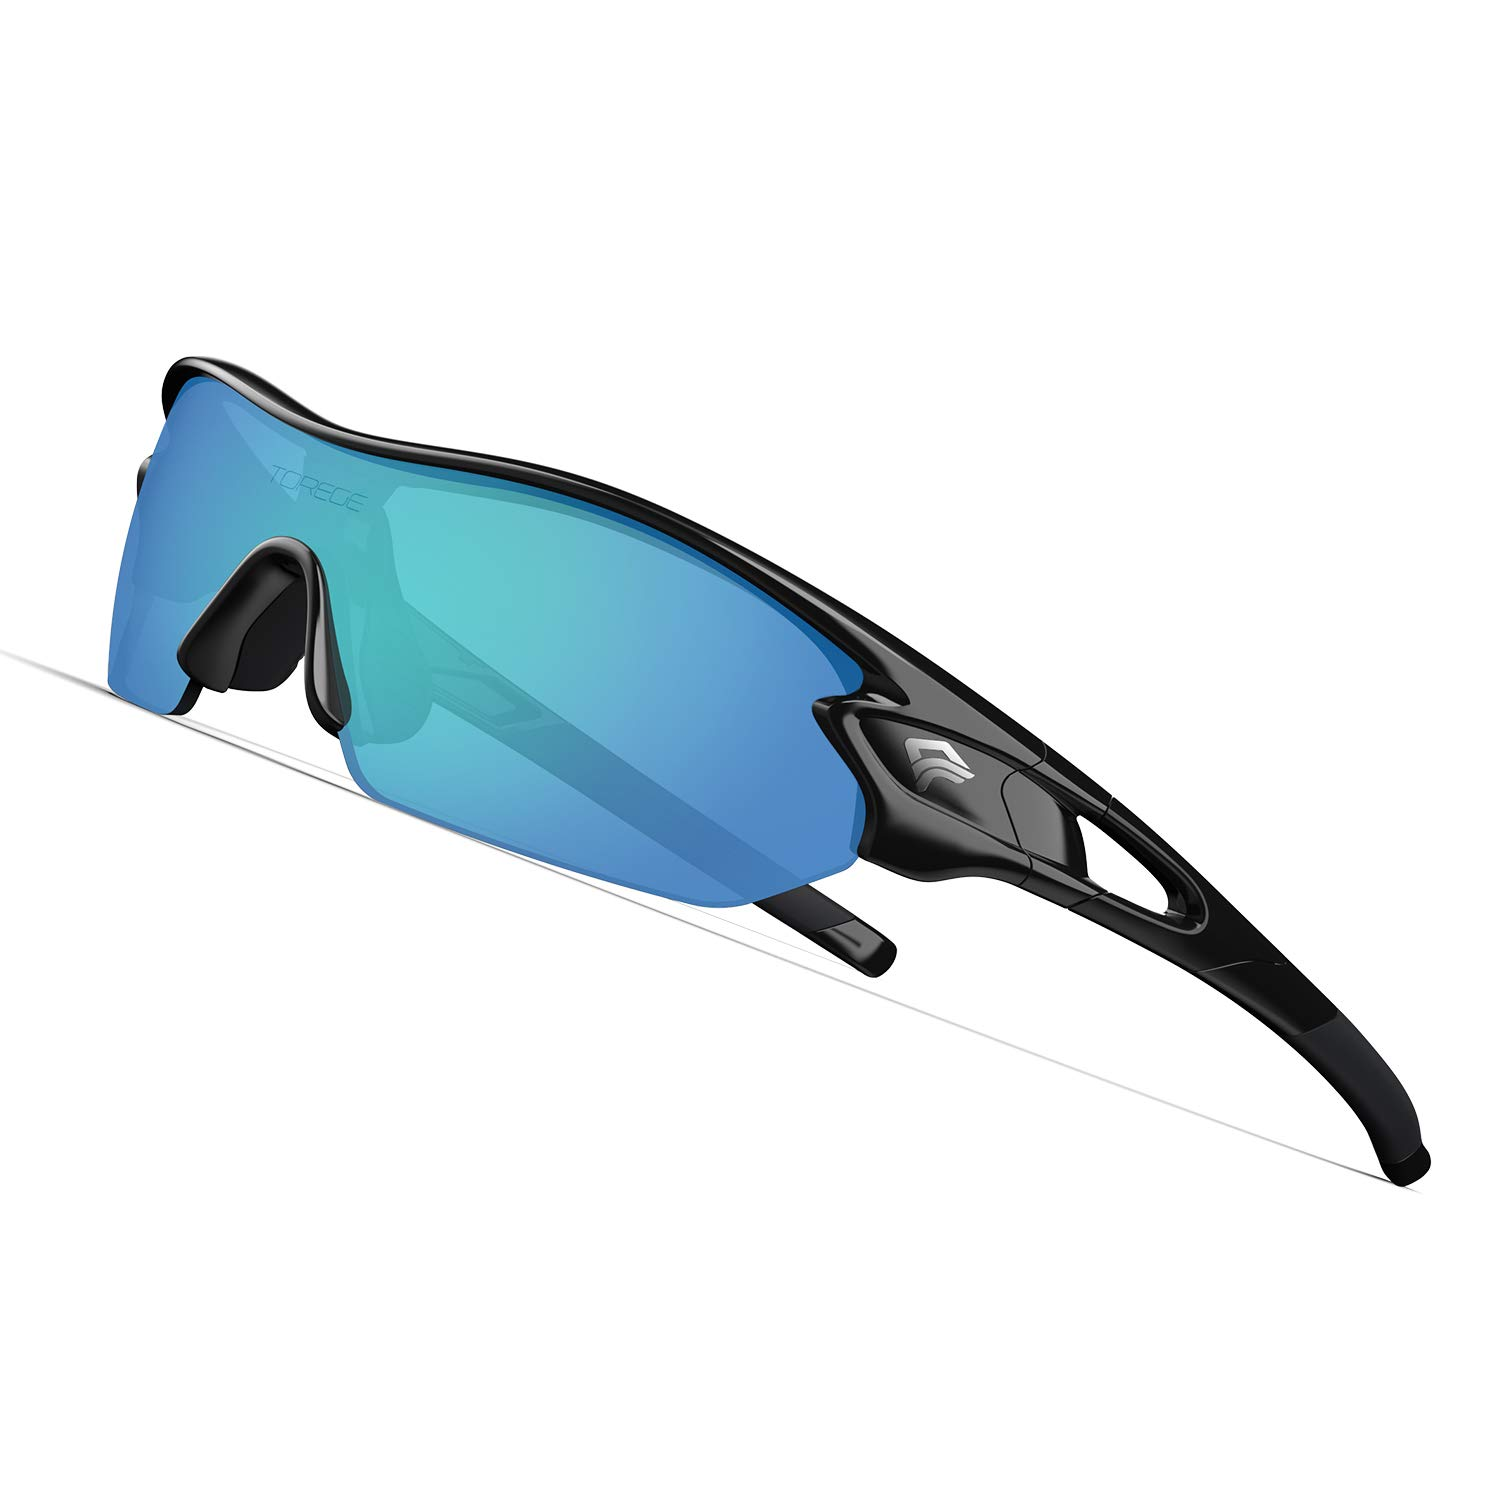 TOREGE Polarized Sports Sunglasses with 3 Interchangeable Lenes for Men Women Cycling Running Driving Fishing Golf Baseball Glasses TR002 Upgrade (Black&Ice Blue Lens)